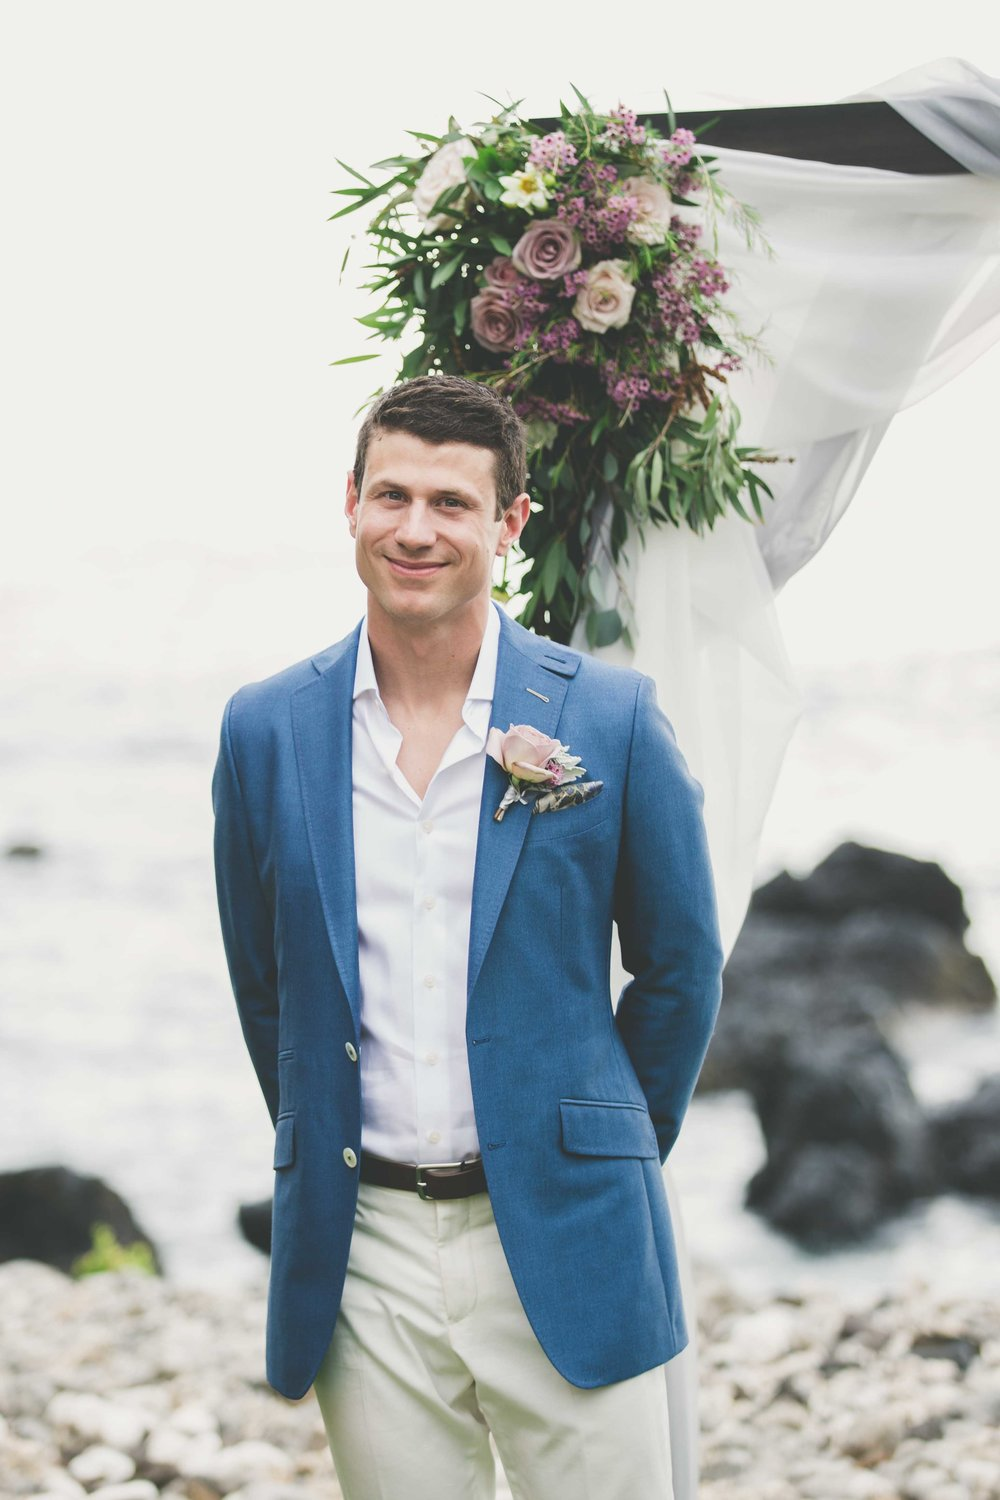 Groom Gratitude | Bliss - Maui Wedding Planning & Design